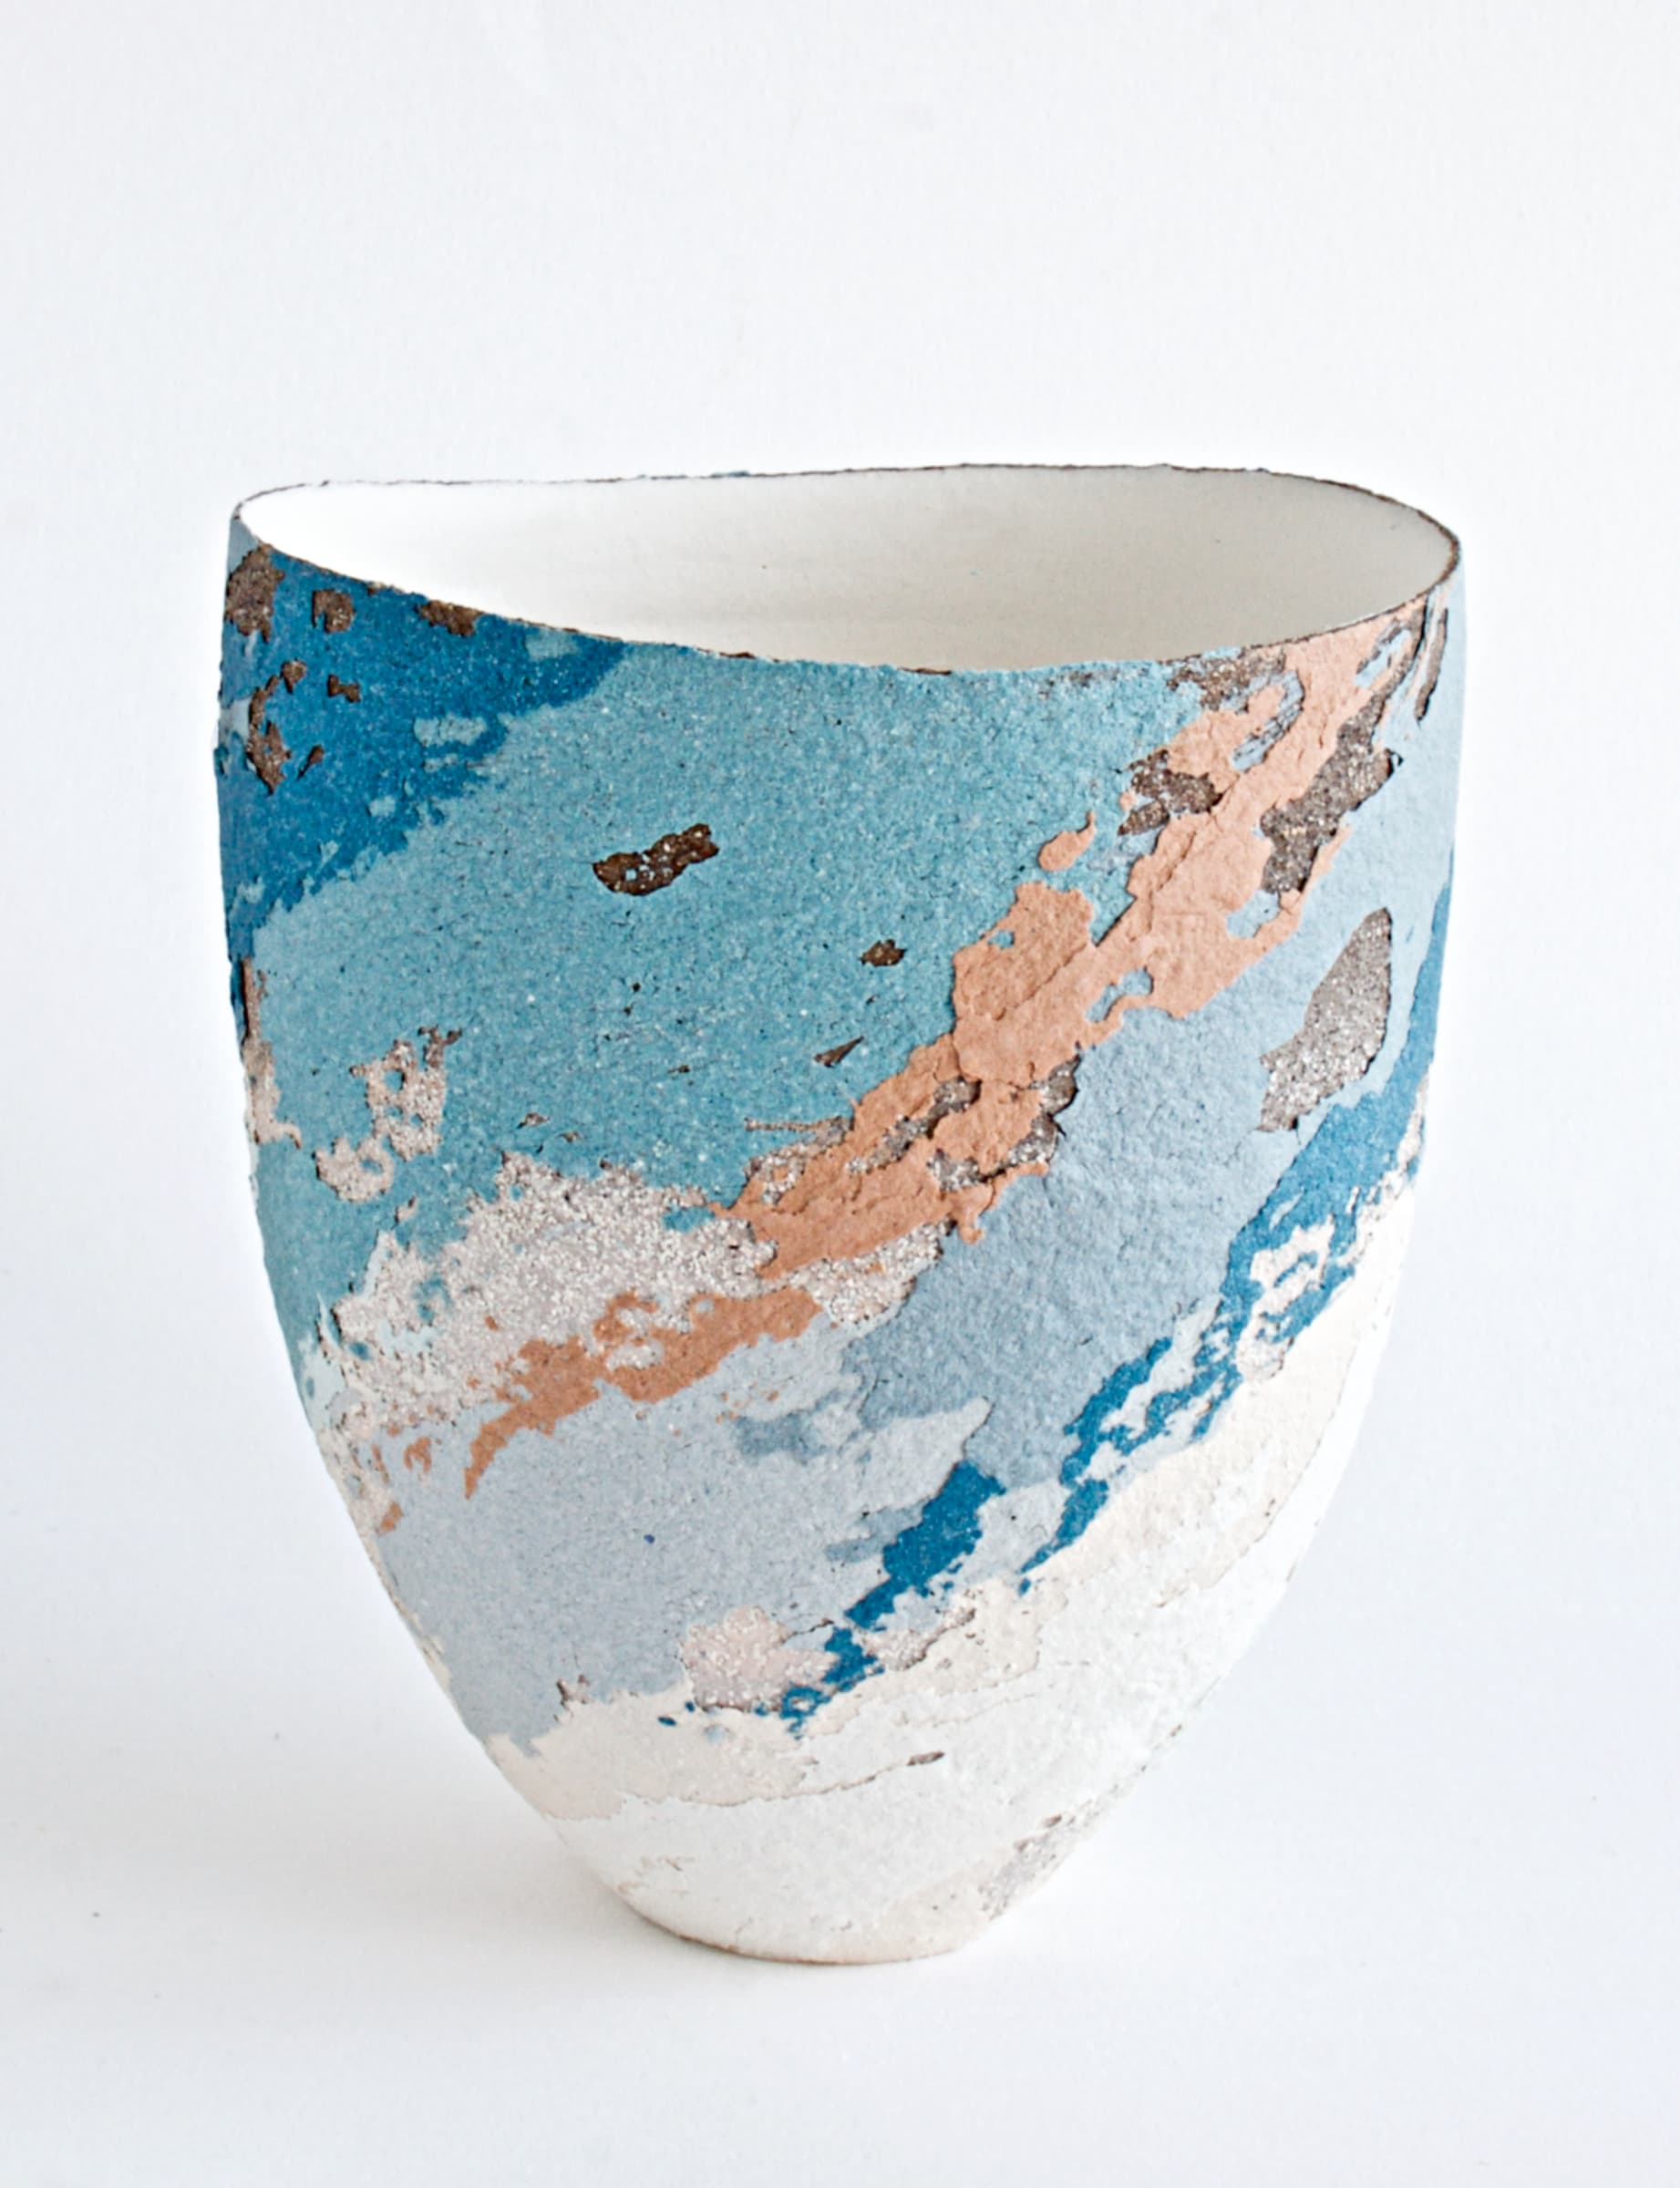 "<span class=""link fancybox-details-link""><a href=""/artists/79-clare-conrad/works/6938-clare-conrad-vessel-scooped-rim-2020/"">View Detail Page</a></span><div class=""artist""><strong>Clare Conrad</strong></div> b. 1948 <div class=""title""><em>Vessel, scooped rim</em>, 2020</div> <div class=""medium"">Stoneware</div> <div class=""dimensions"">h. 14 cm </div><div class=""price"">£220.00</div><div class=""copyright_line"">Copyright The Artist</div>"